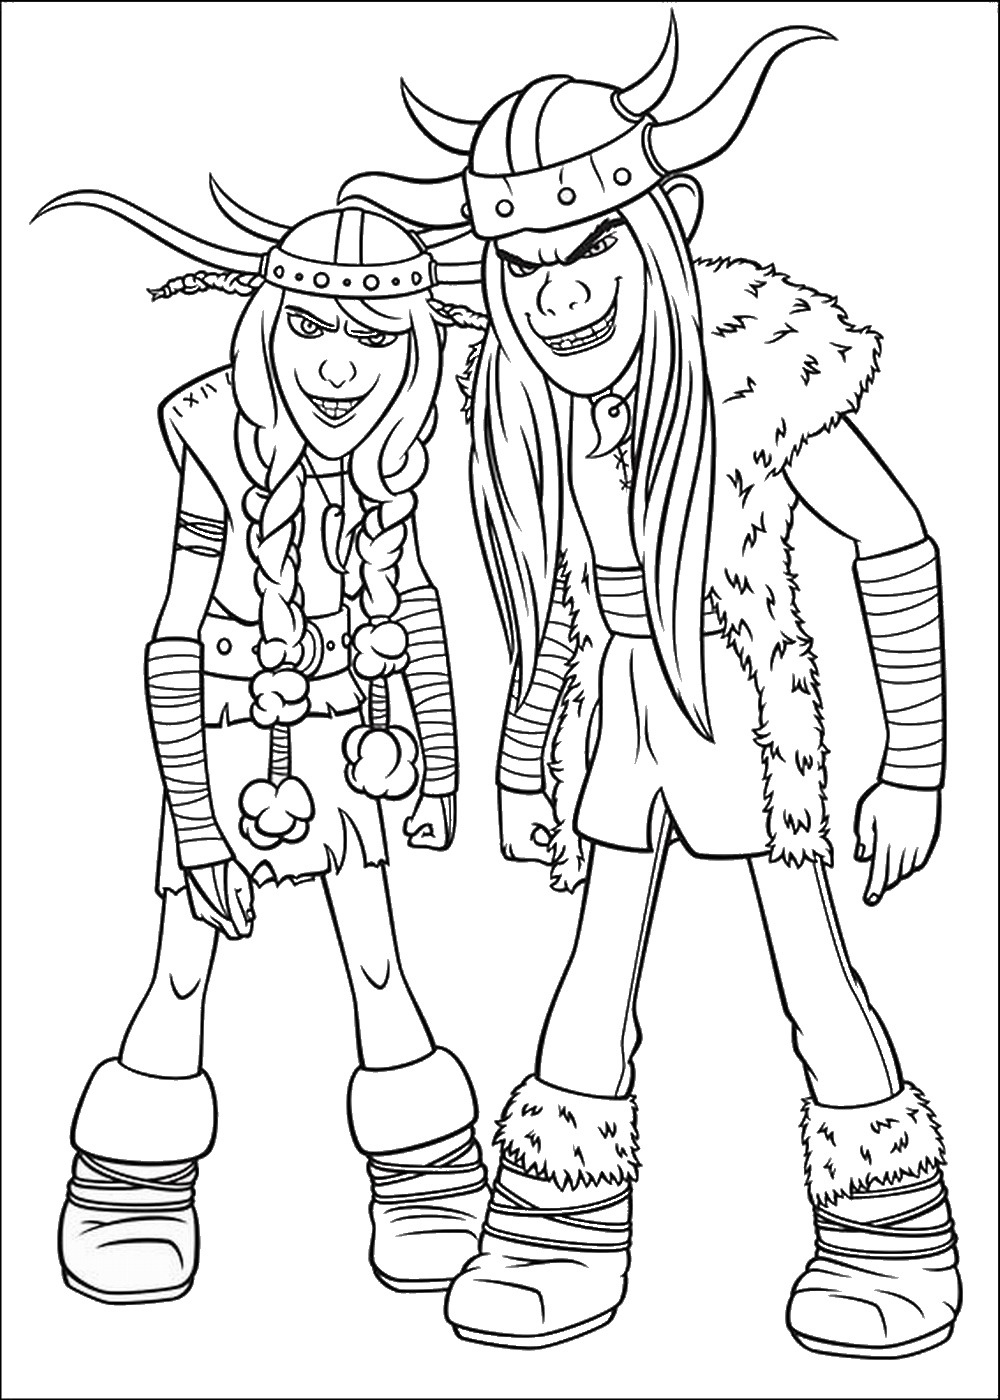 how to train your dragon coloring pages online how to train your dragon coloring pages to online how pages dragon coloring train your